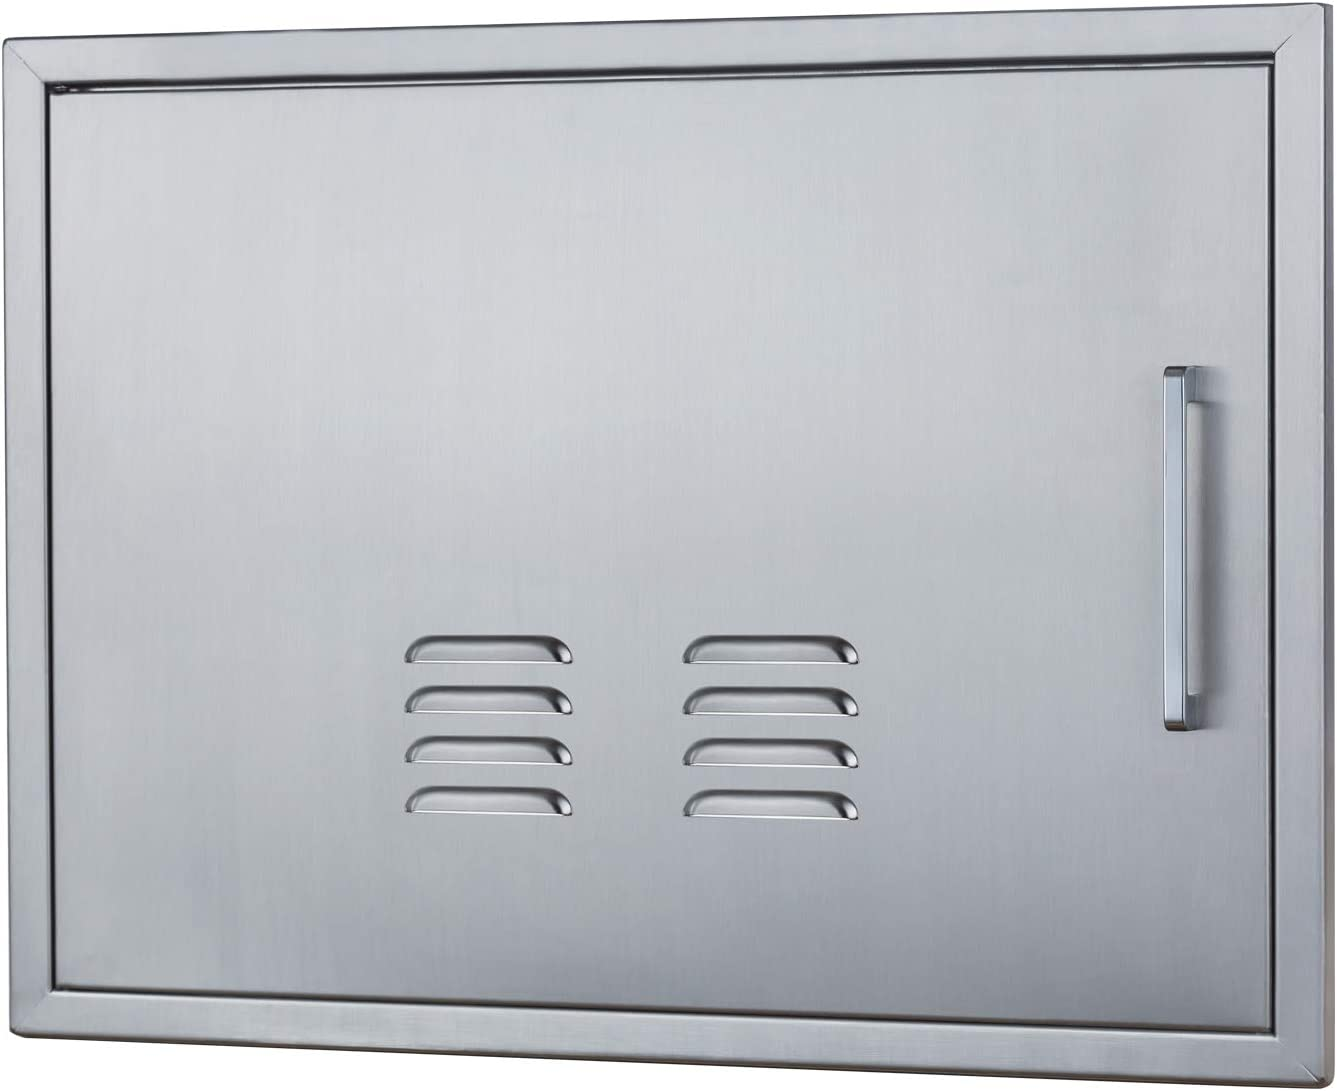 Amazon Com Vented Outdoor Kitchen Doors 23 W X 17 H Stainless Steel Bbq Single Access Door W Left Swing Flush Mount For Outdoor Kitchen And Bbq Island Home Improvement